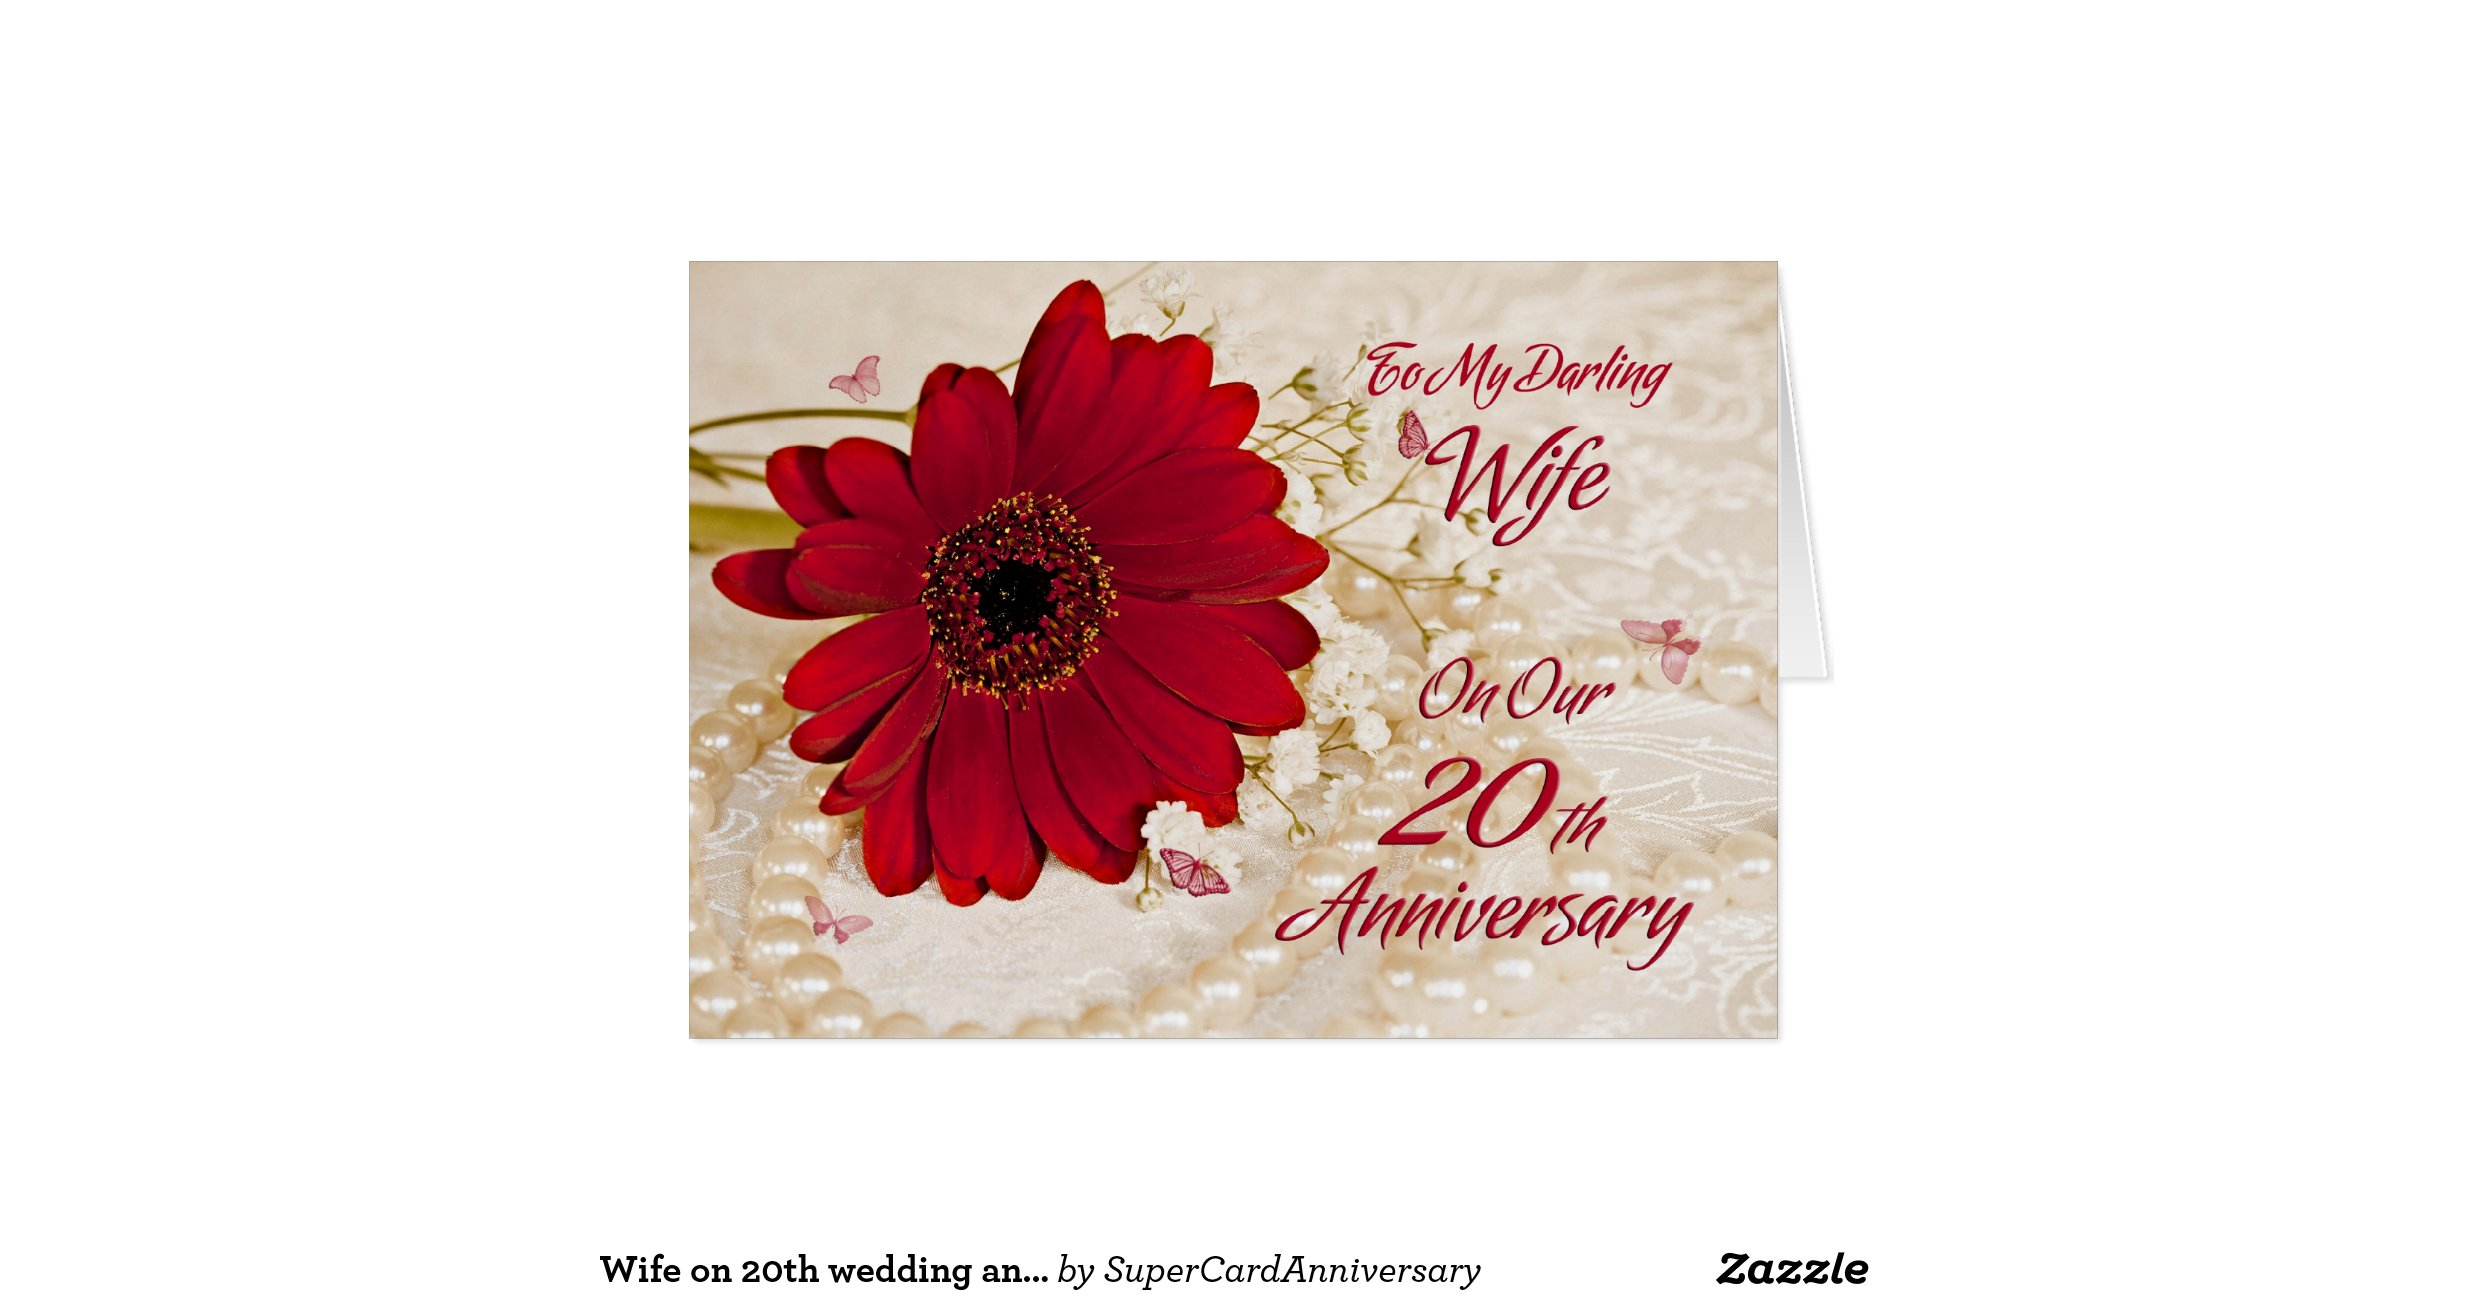 20th Wedding Anniversary Gift For Wife: Wife On 20th Wedding Anniversary, A Daisy Flower Greeting